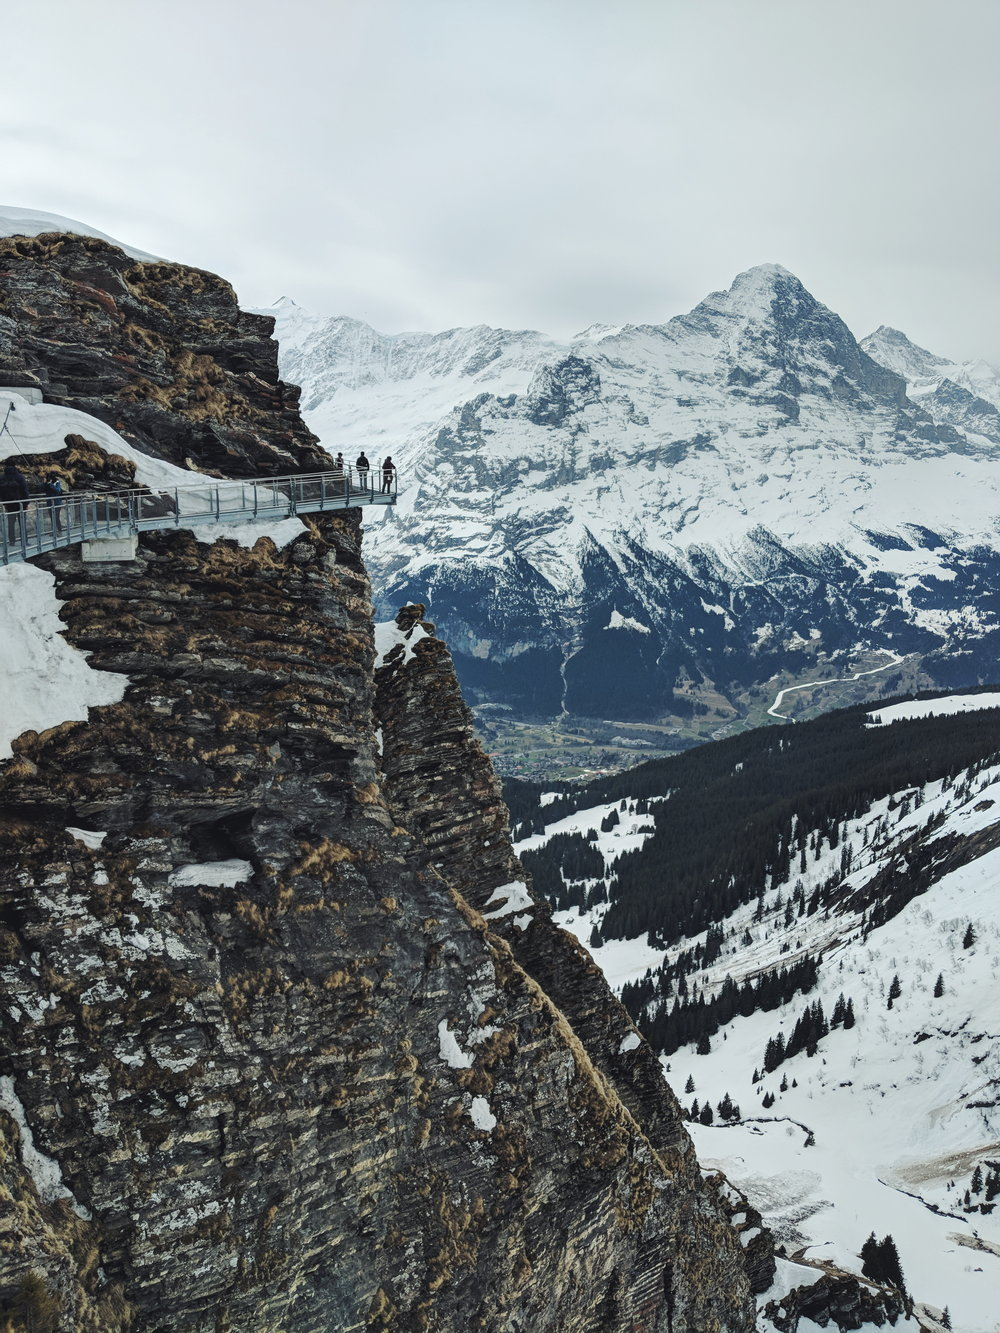 grindelwald first cliff walk 1.jpg